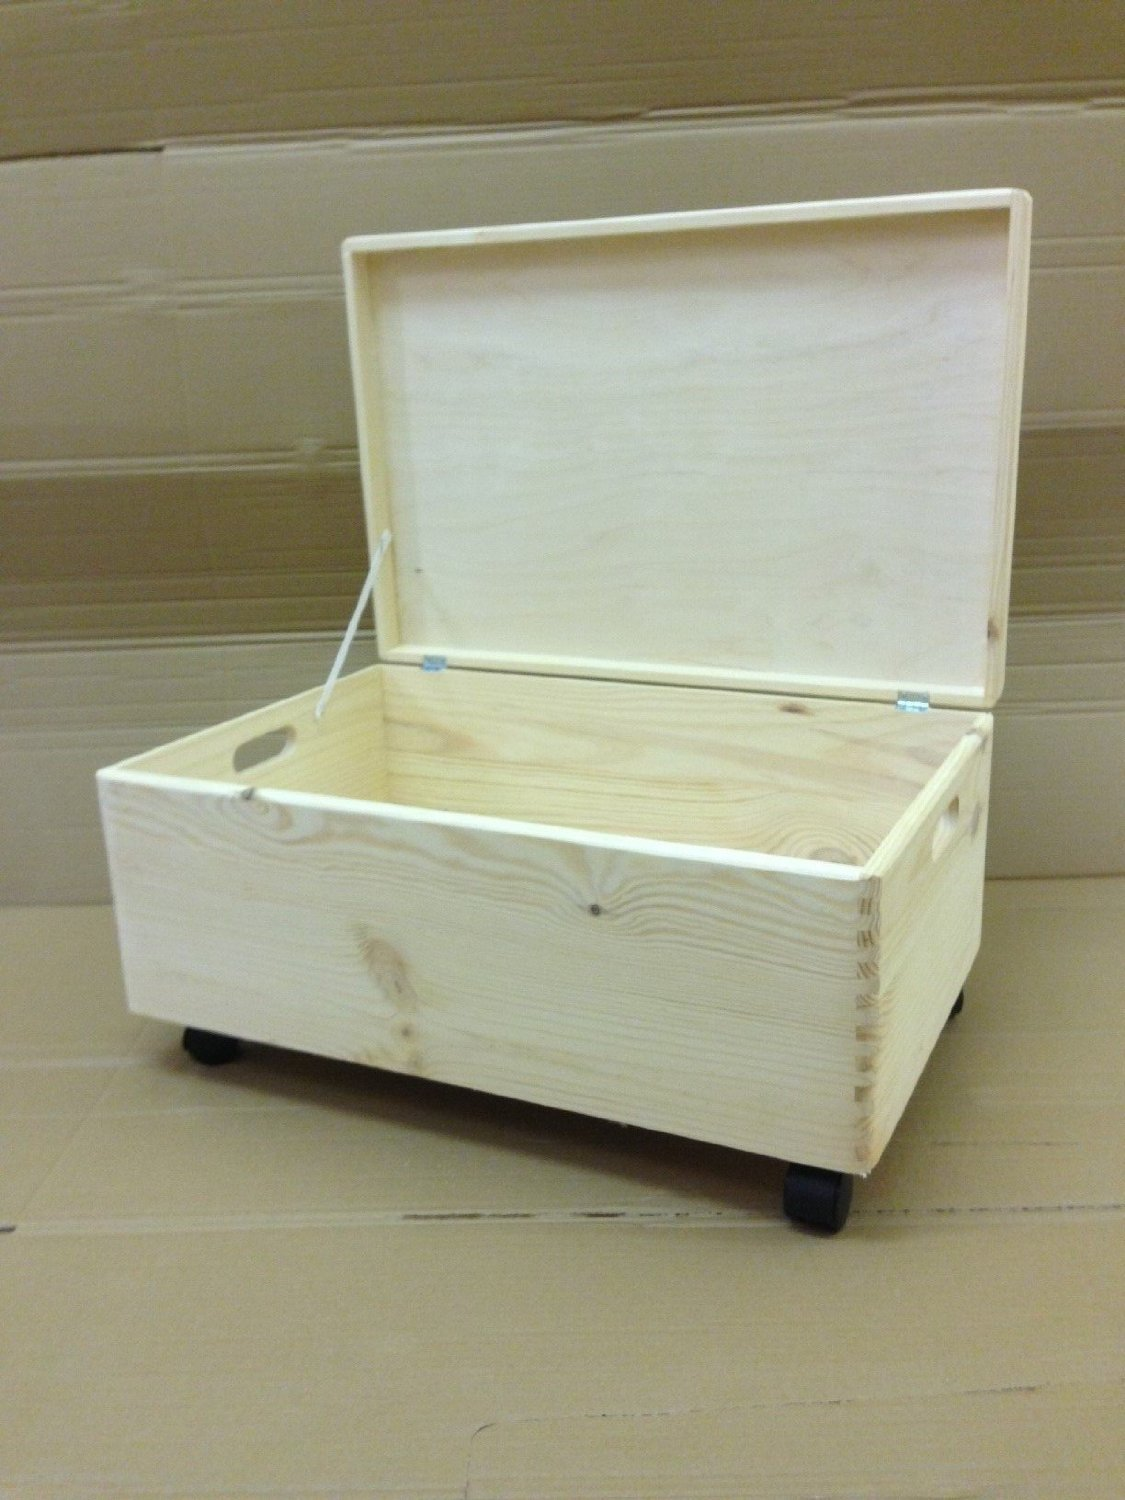 Amazon.com: Large Unpainted Wooden Chest Box With Castors And Lid/ Trunk  Storage Unfinished Toy Box 60x 40x 24cm By HomeDecoArt: Appliances